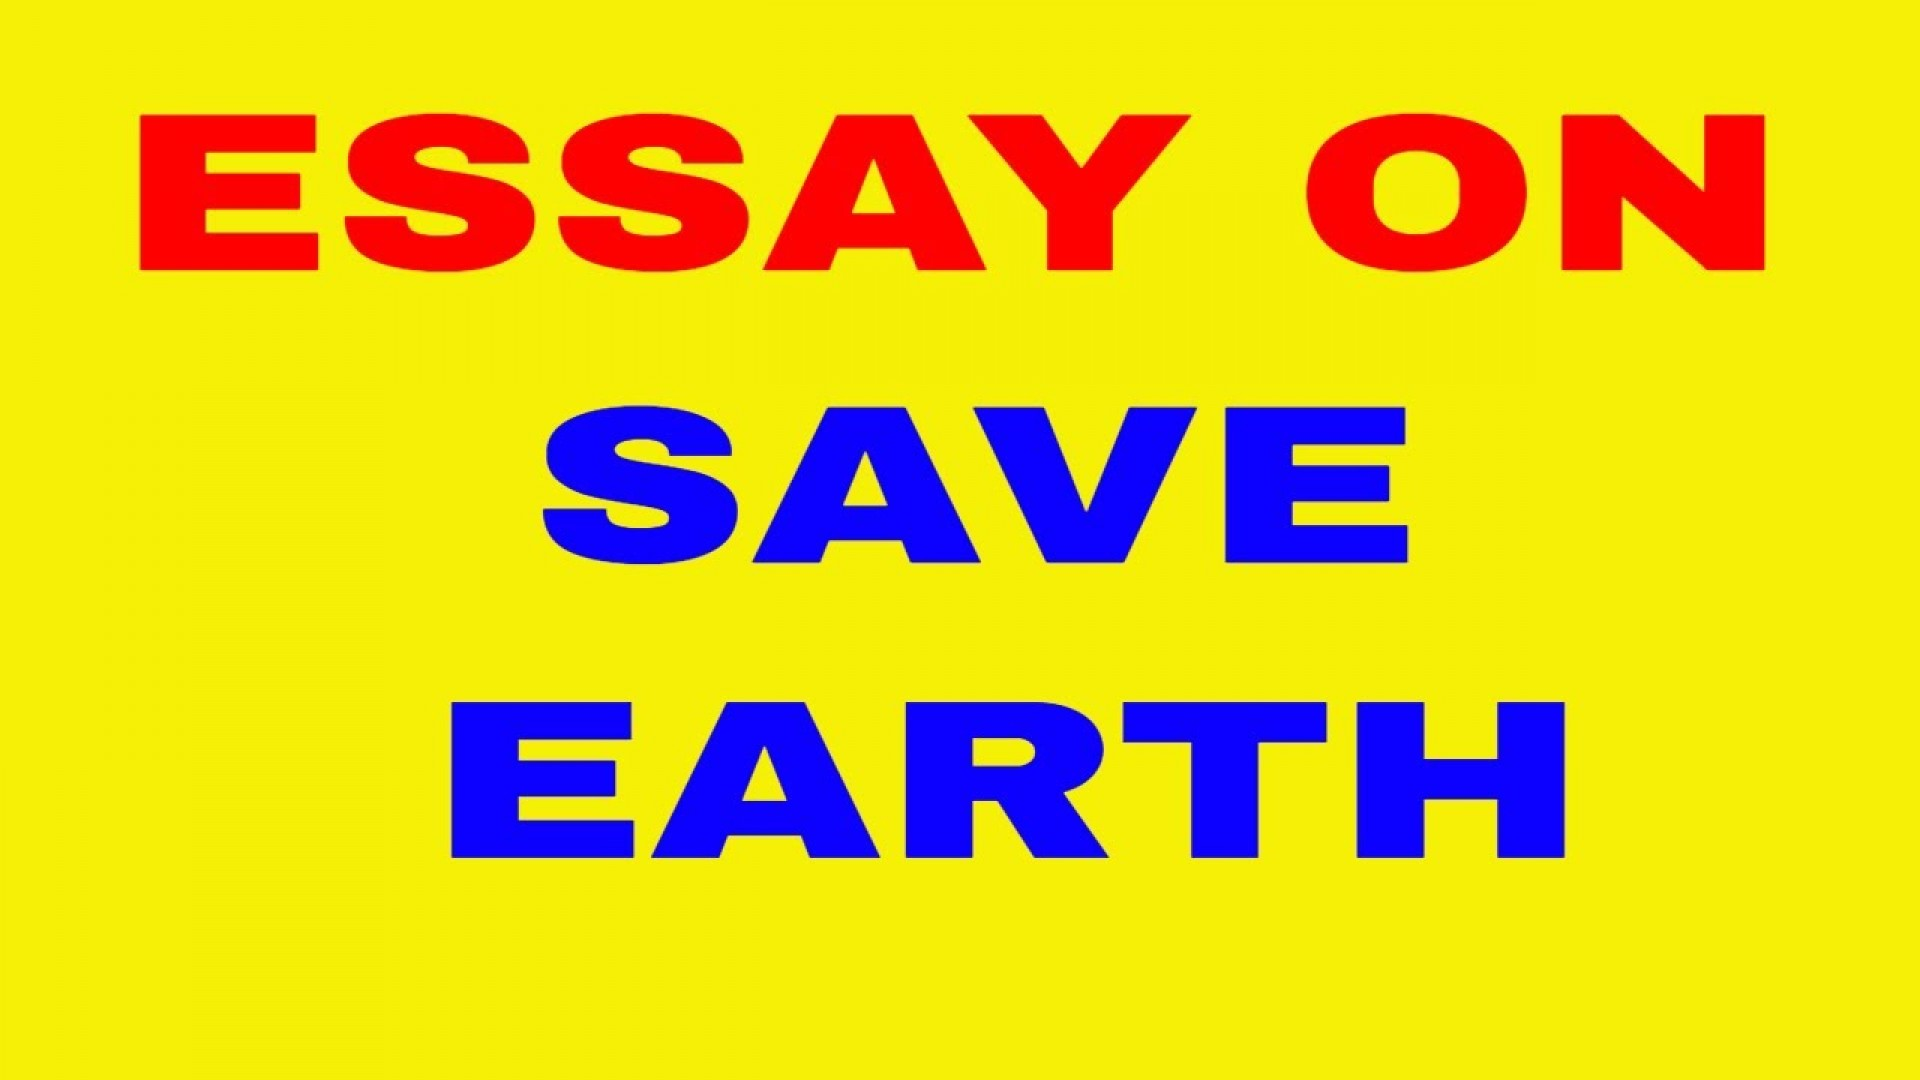 008 Earth Essay Example Marvelous Day In English Pt3 If Could Speak Marathi On Mother For Class 3 1920